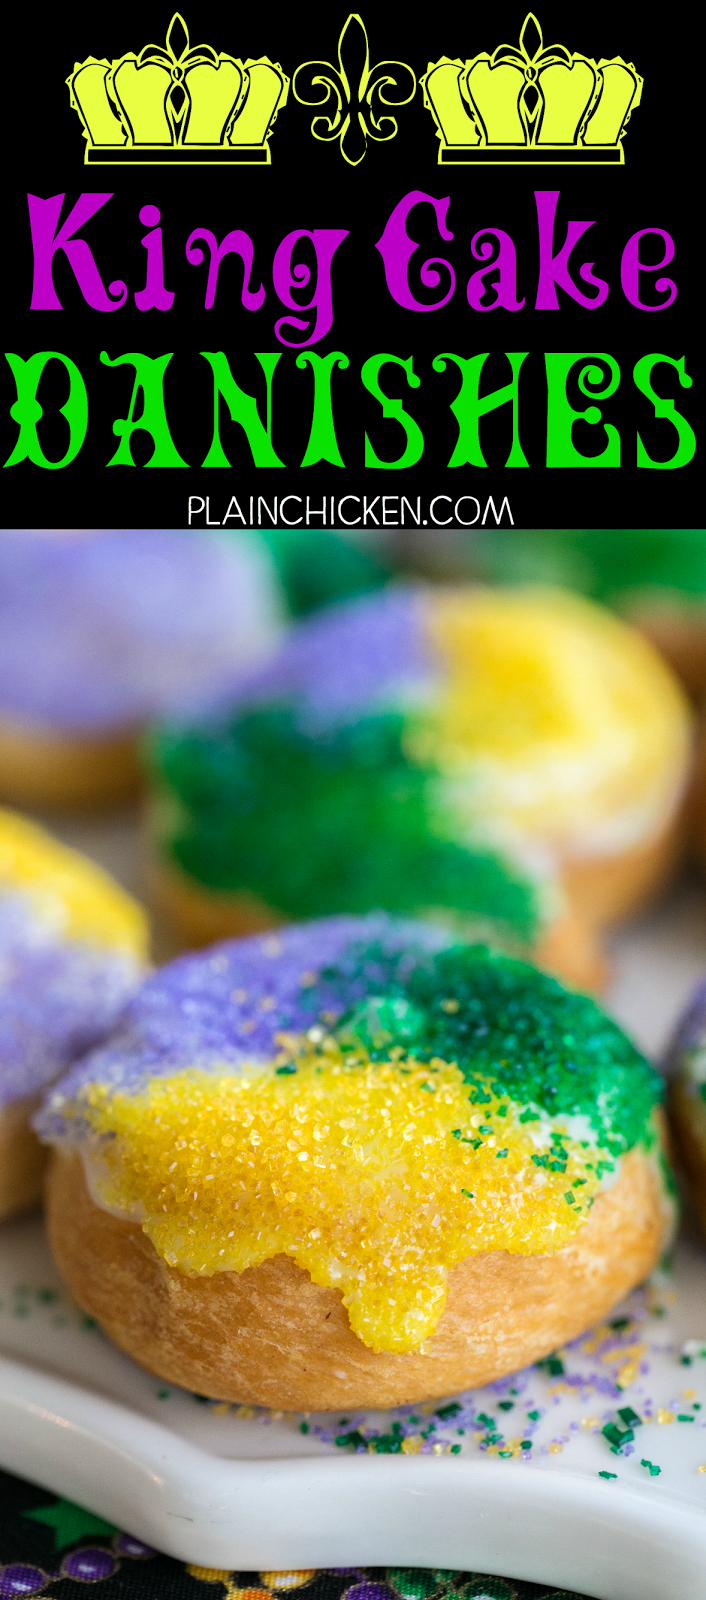 King Cake Danishes Only 5 Ings These Things Are Soooo Good Perfect For Mardi Gras Crescent Rolls Cinnamon Cream Cheese Powdered Sugar And